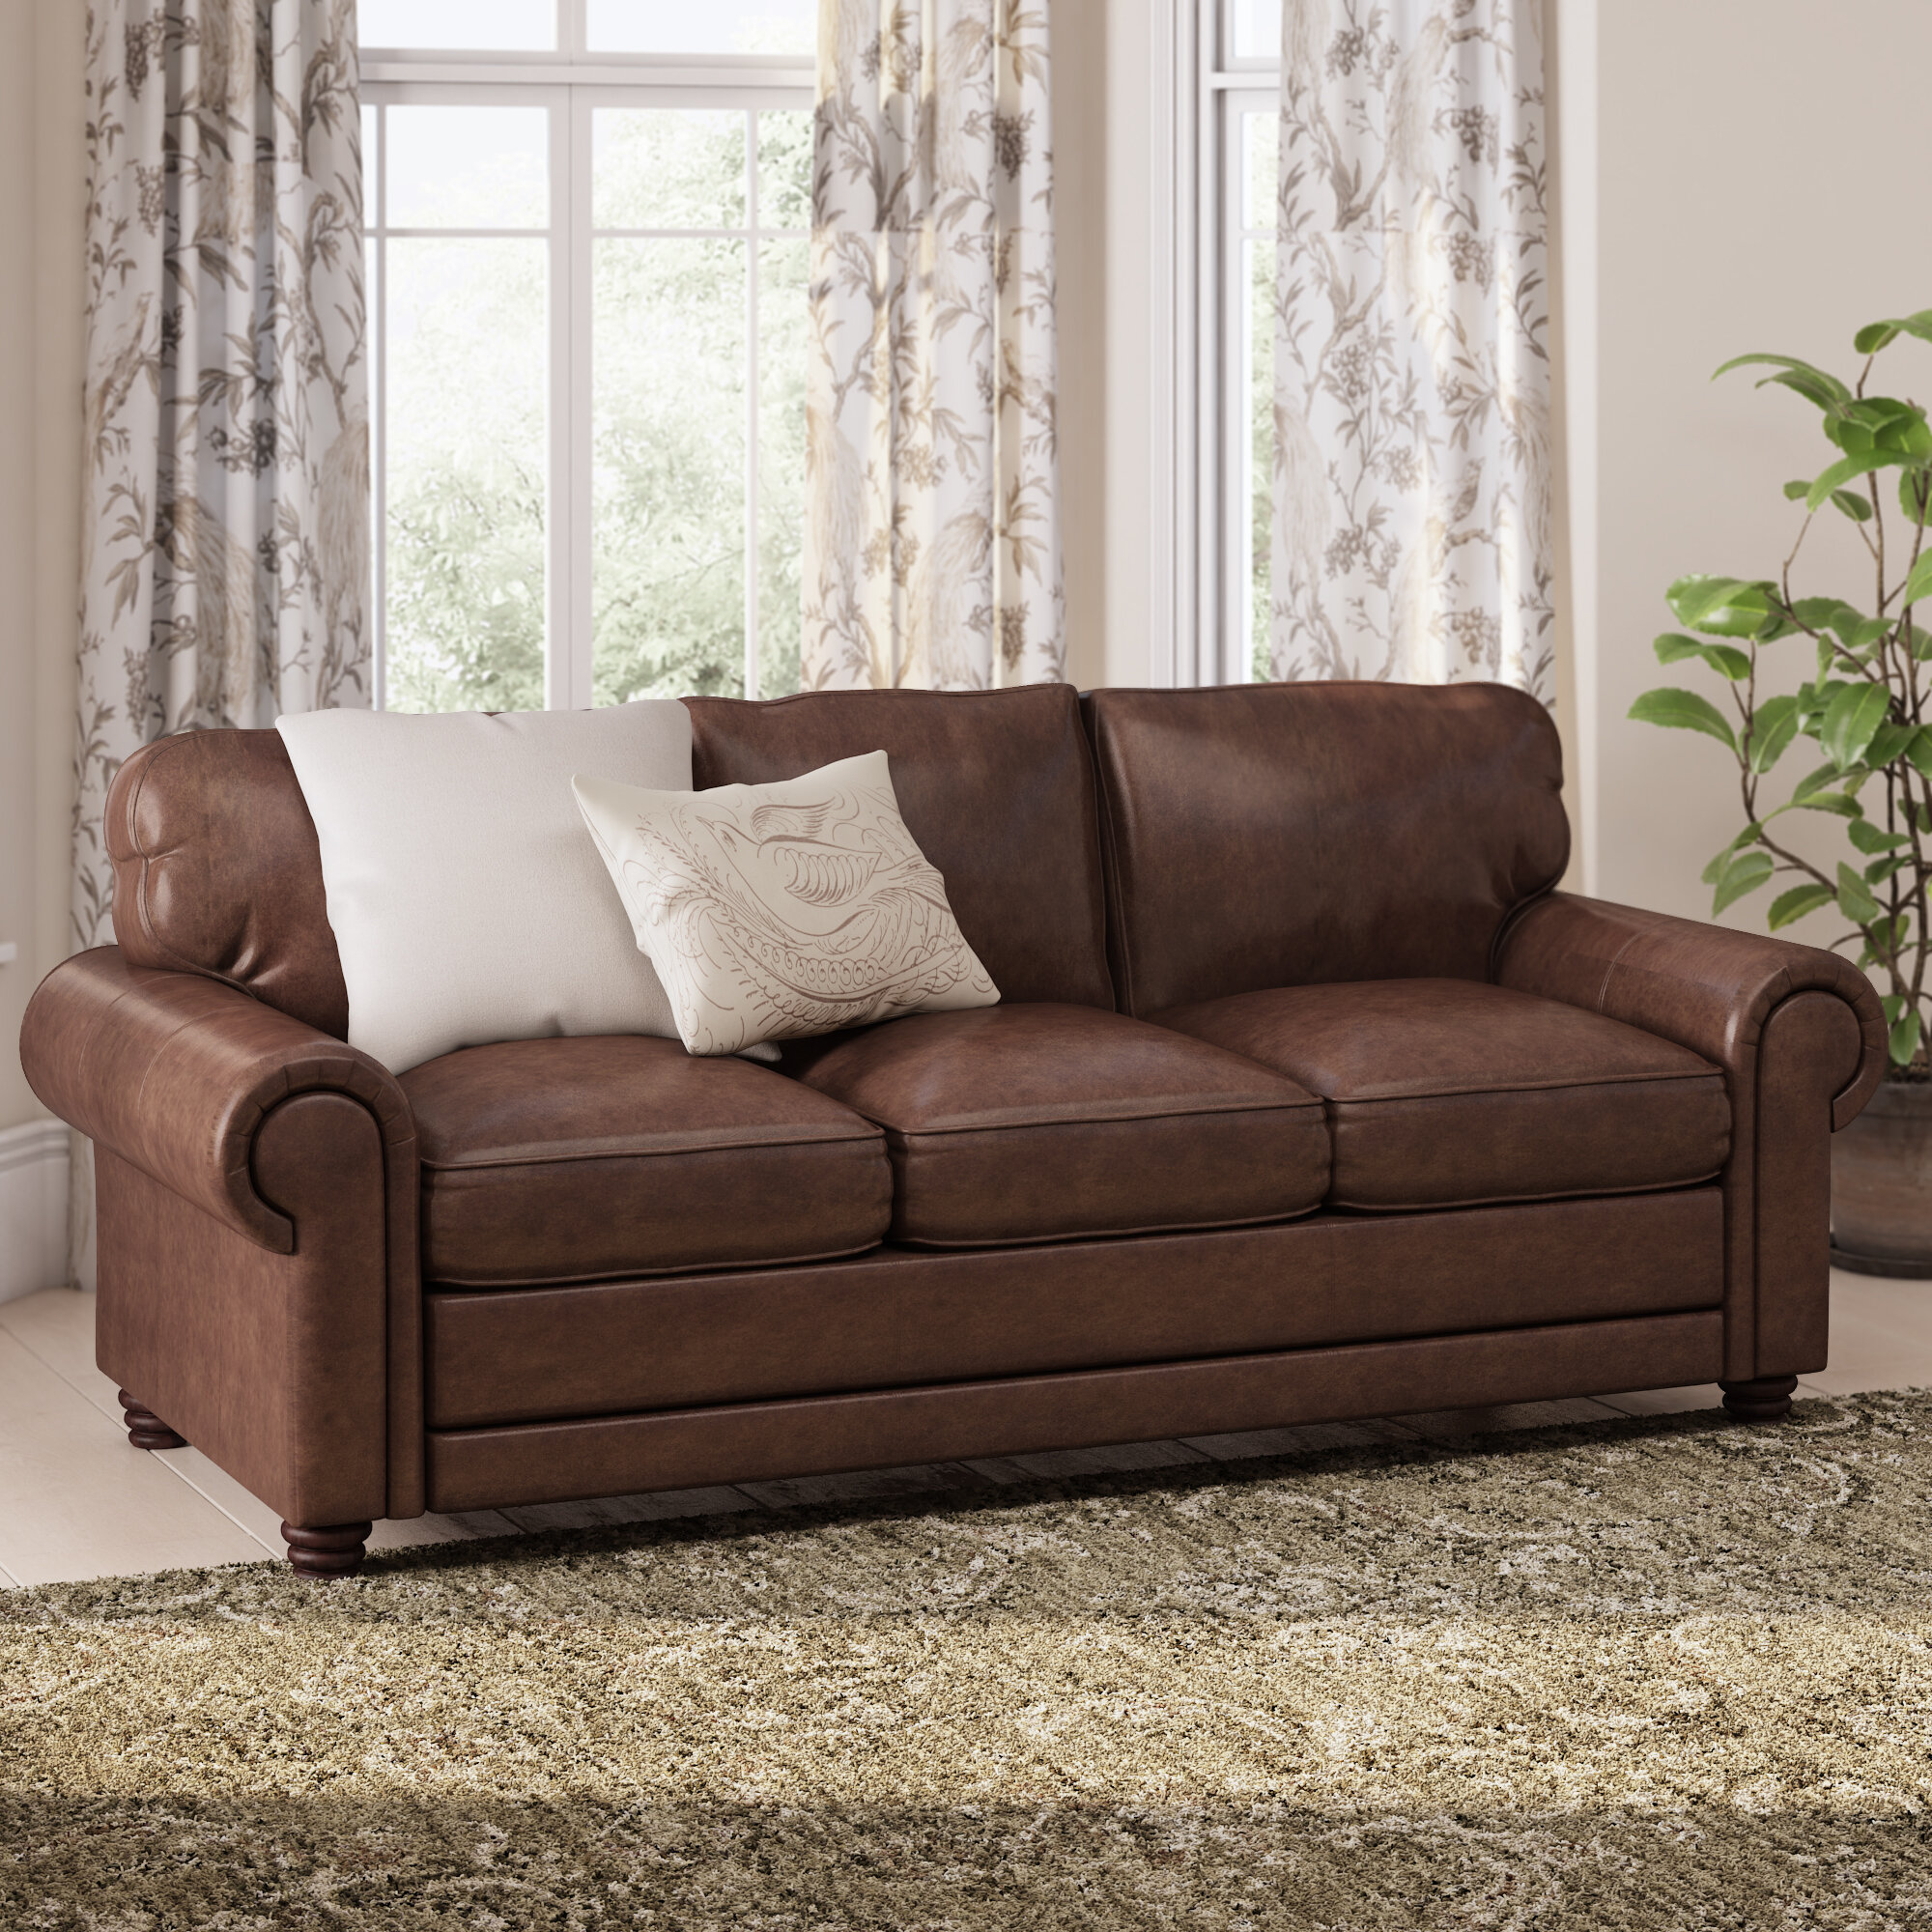 Swell Lambdin Leather Sofa Ocoug Best Dining Table And Chair Ideas Images Ocougorg